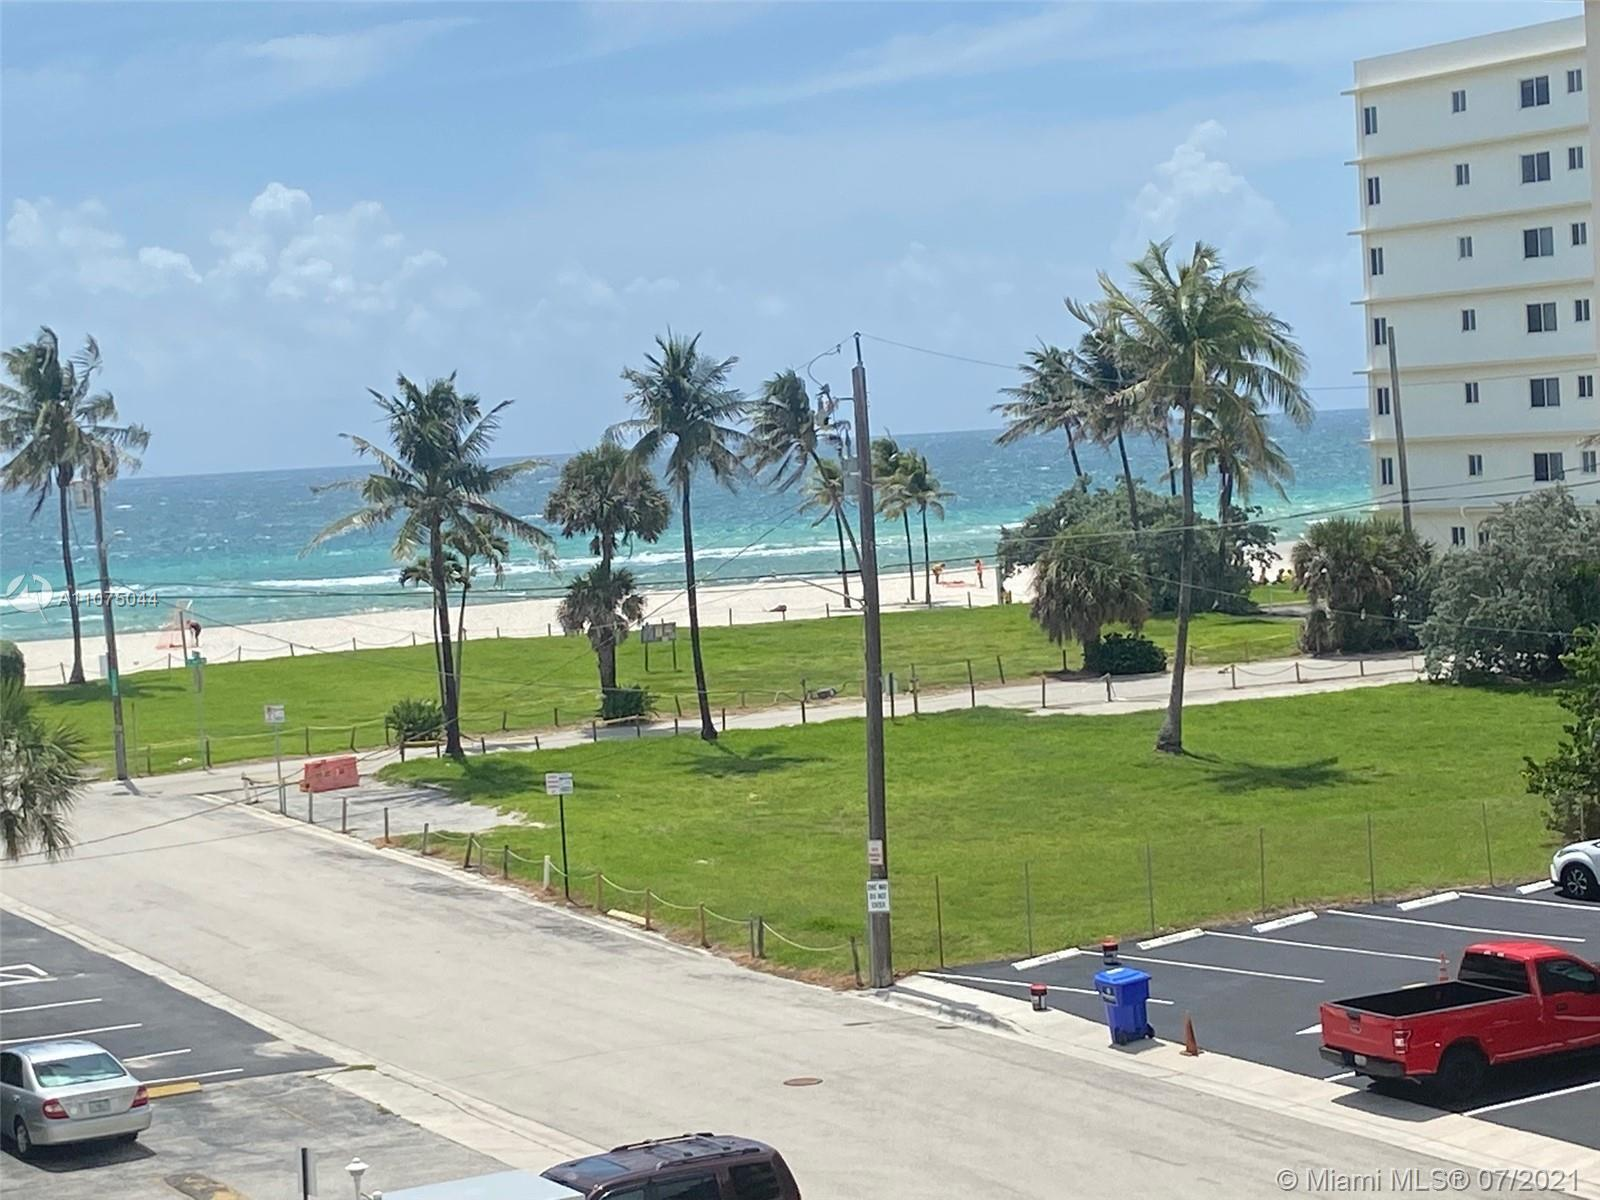 LOCATION! LOCATION! LOCATION!! 2 Bed 2 Bath CORNER UNIT WITH OCEAN AND INTRACOASTAL VIEWS FROM THE W